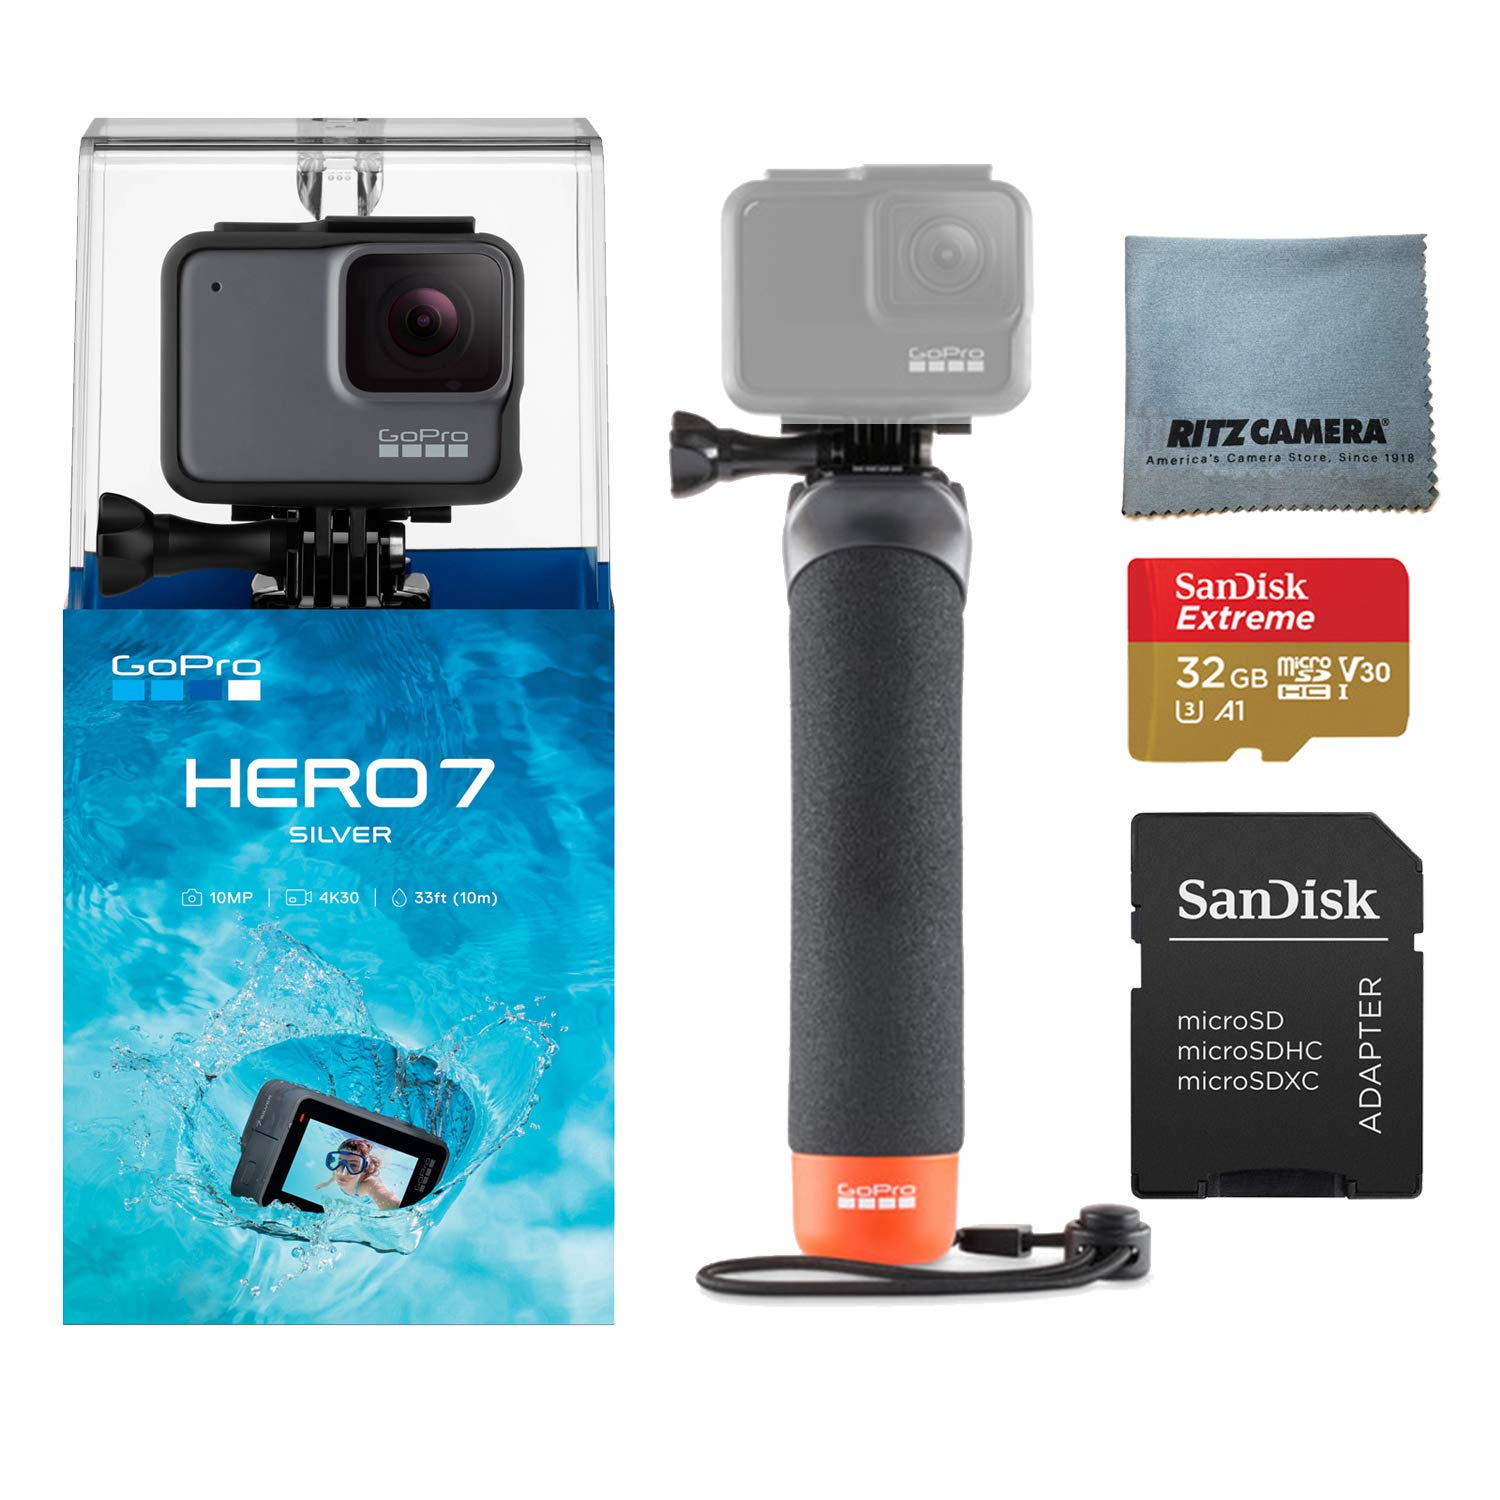 GoPro Hero7 Silver Bundle with GoPro Float Handle, Sandisk U3 32GB Memory Card and Ritz camera Cleaning Cloth by Ritz Camera